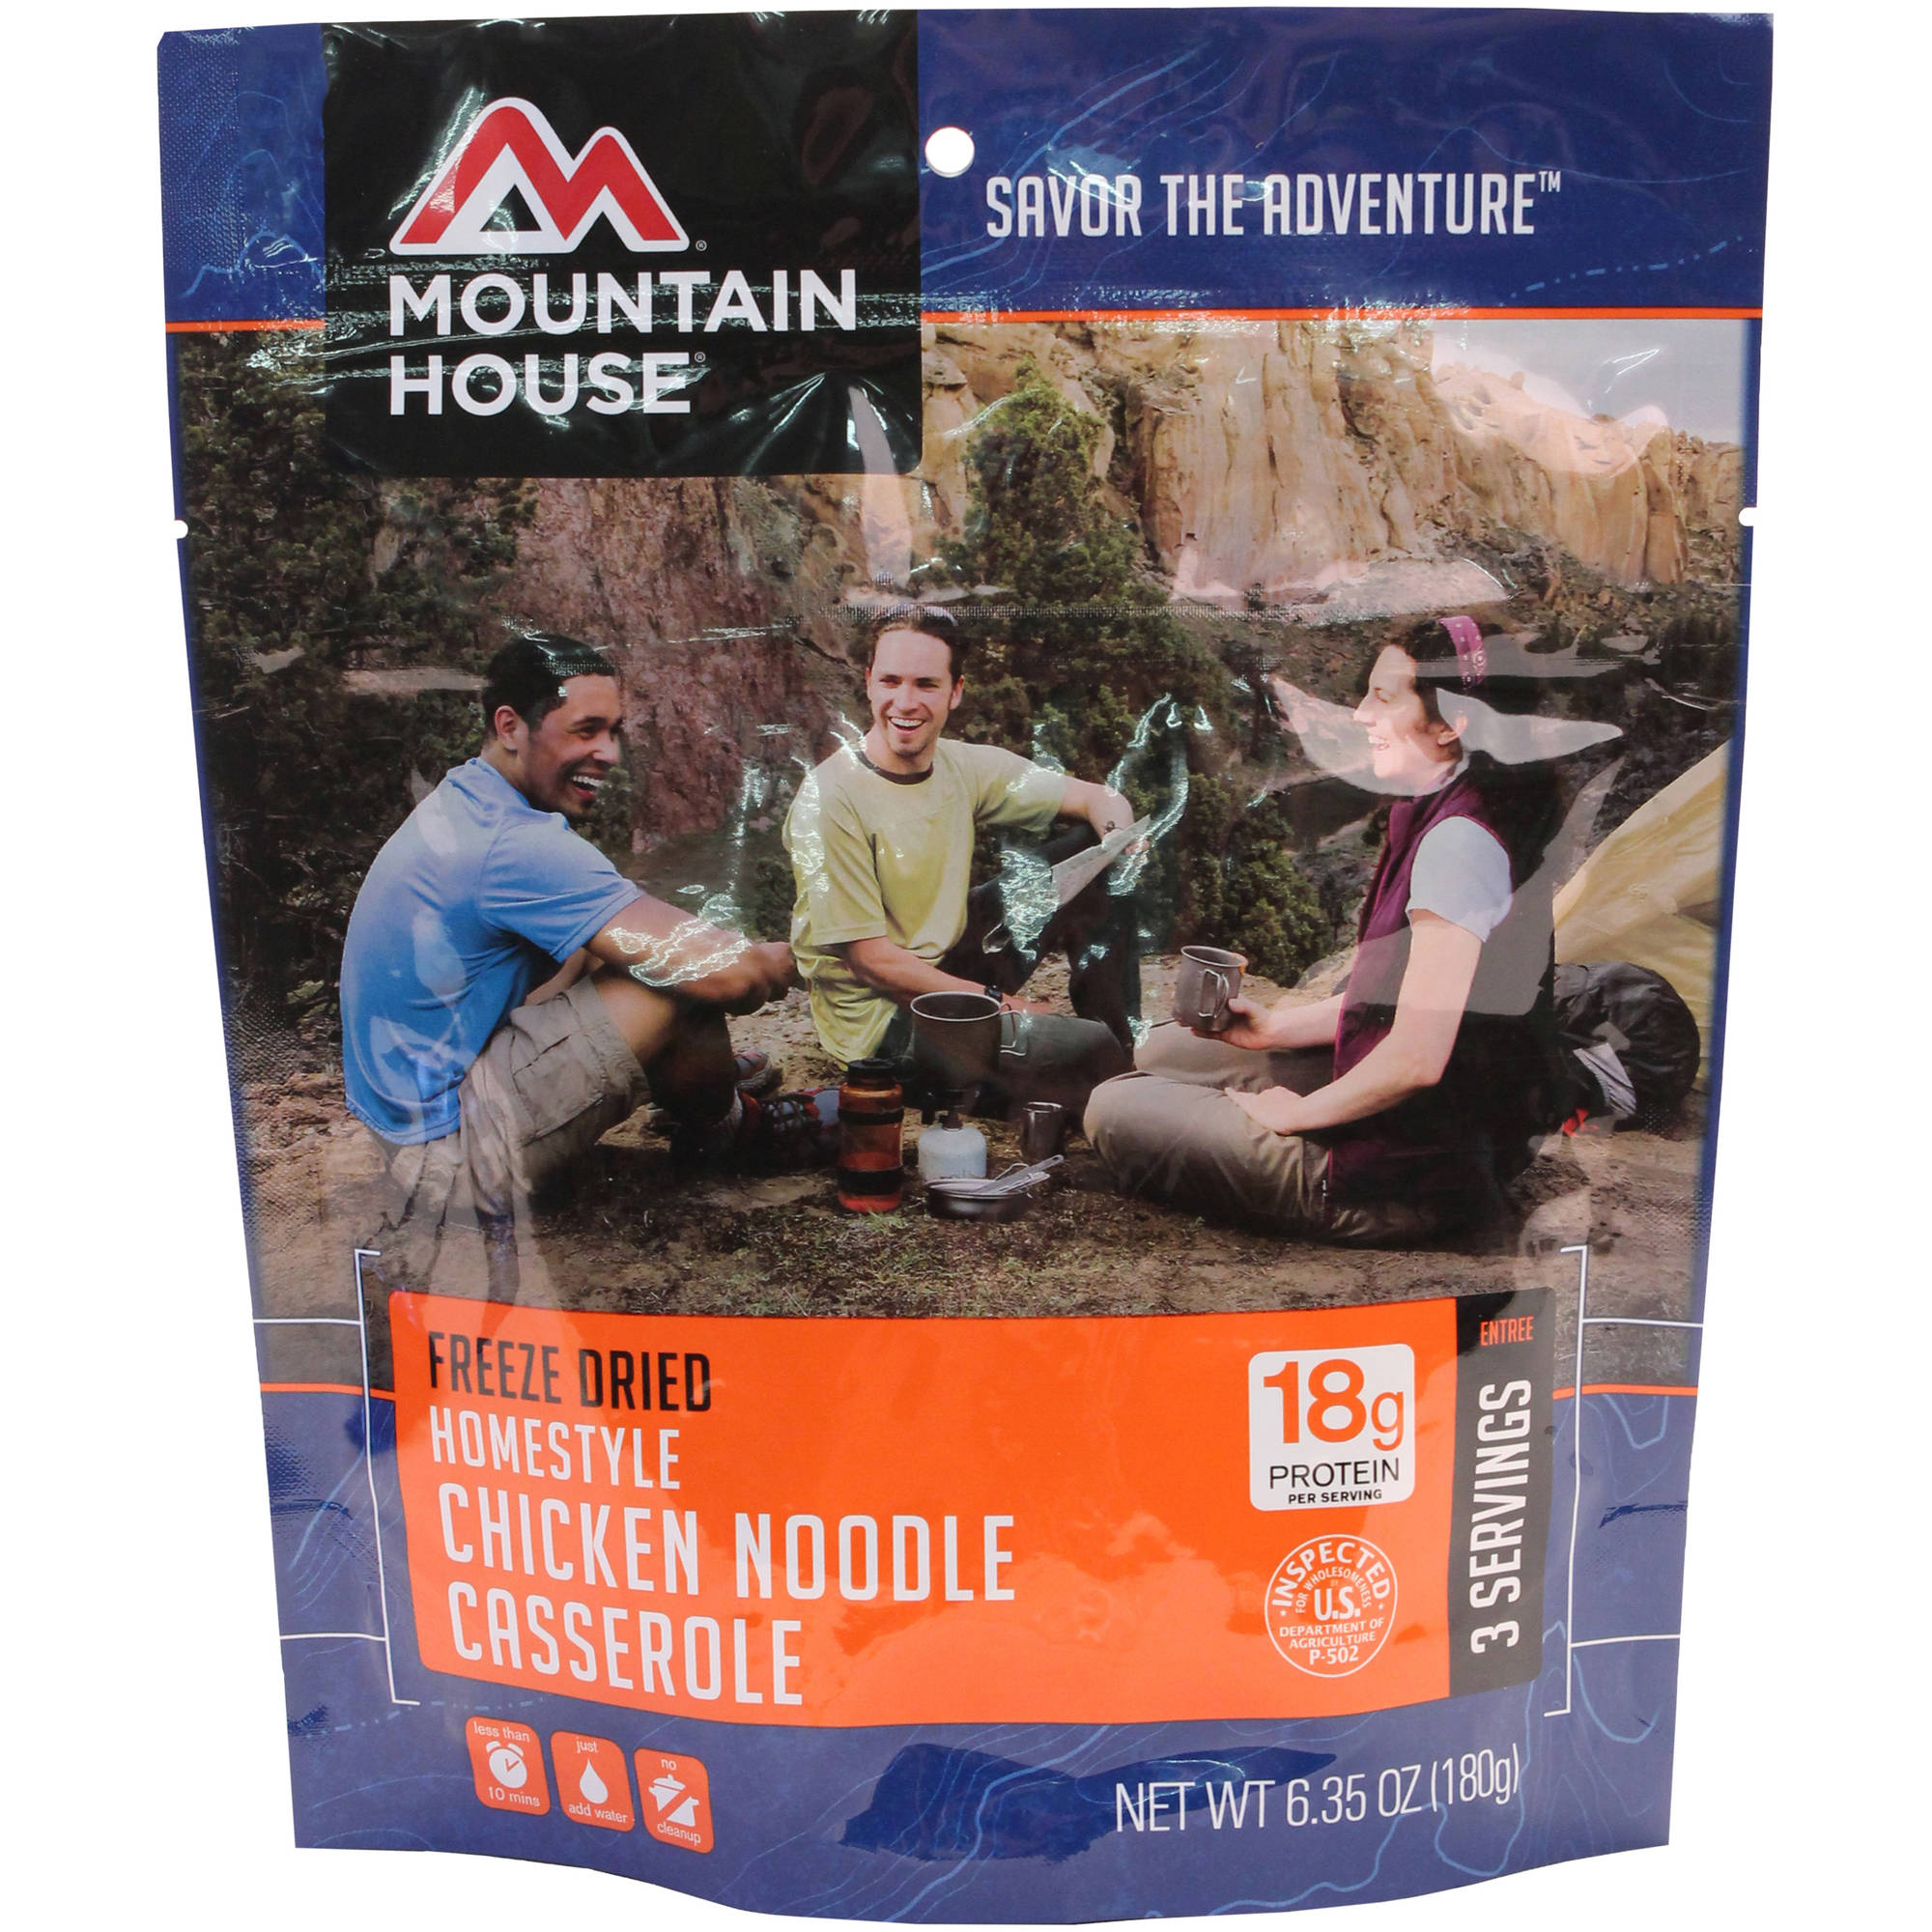 Mountain House Entrees Homestyle Chicken Noodle Casserole, 3 Servings